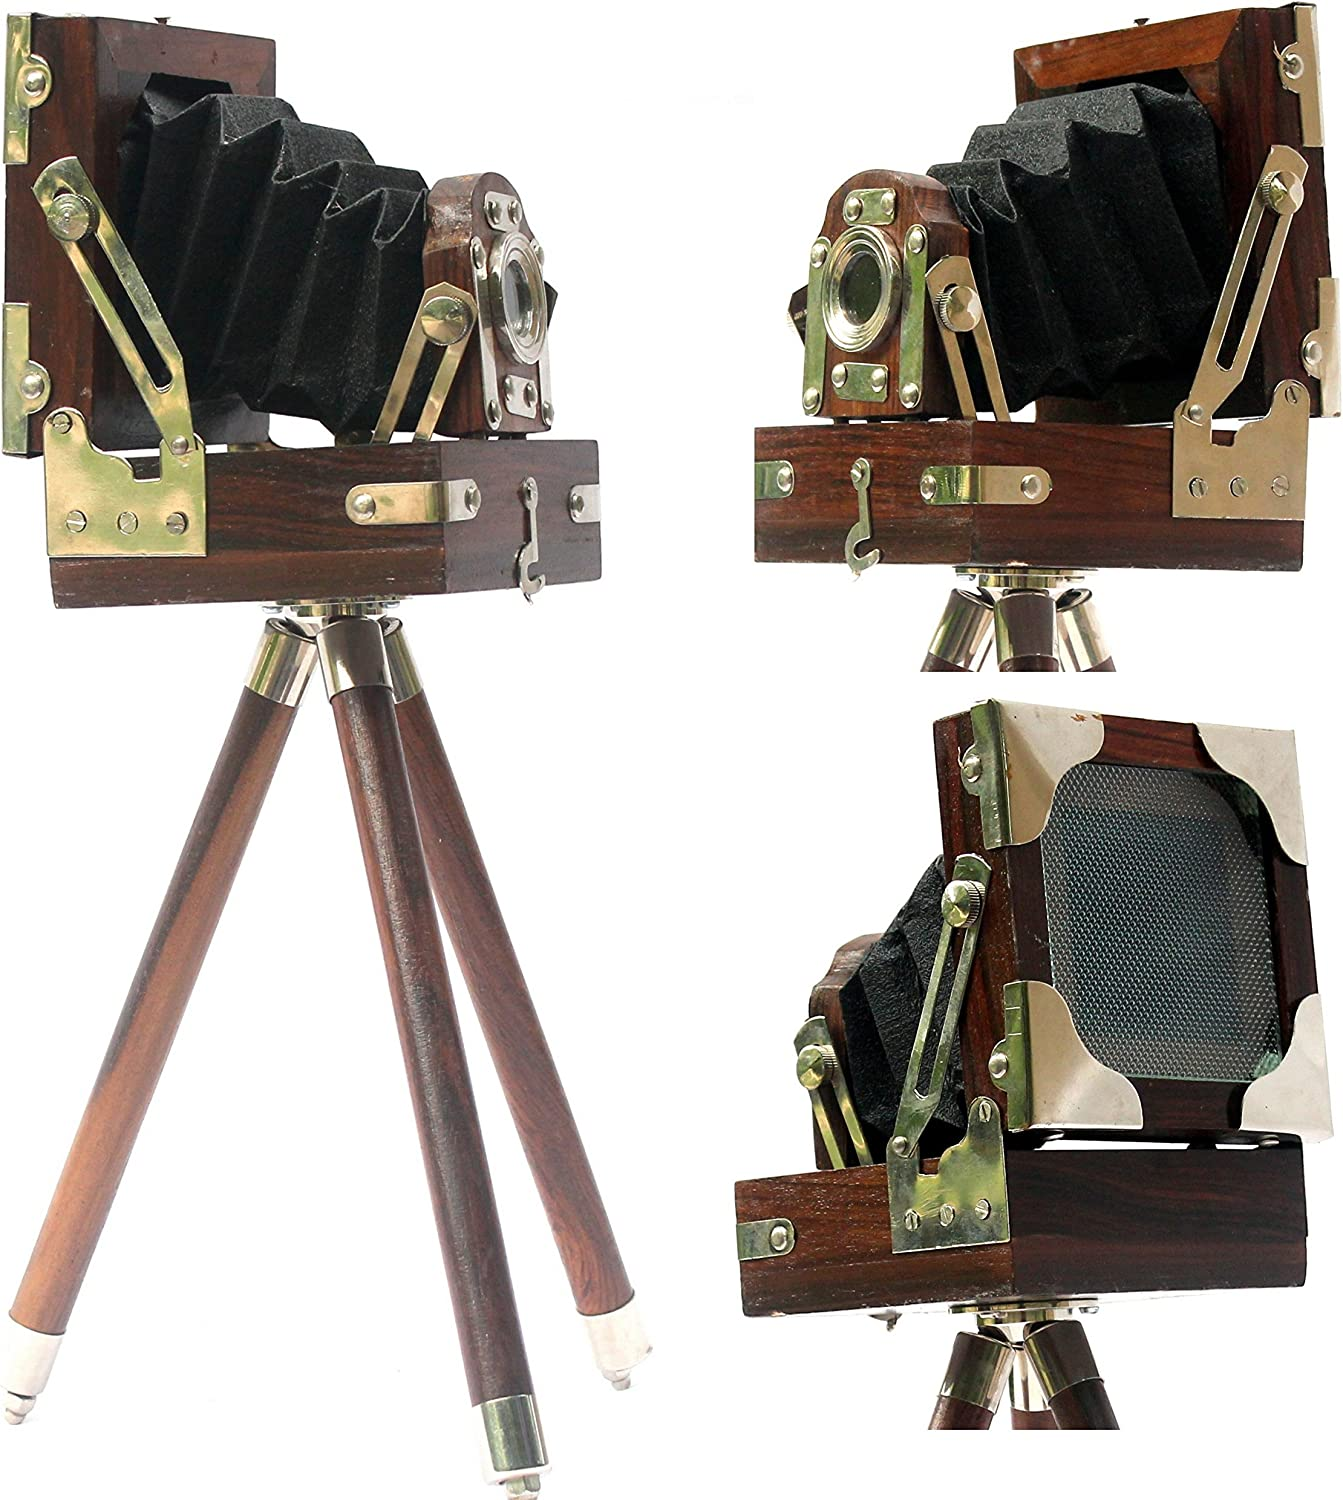 New Antique Vintage Look Film Camera Wooden Tripod Collectible Studio Gift Item Brown Color (10 Inches)